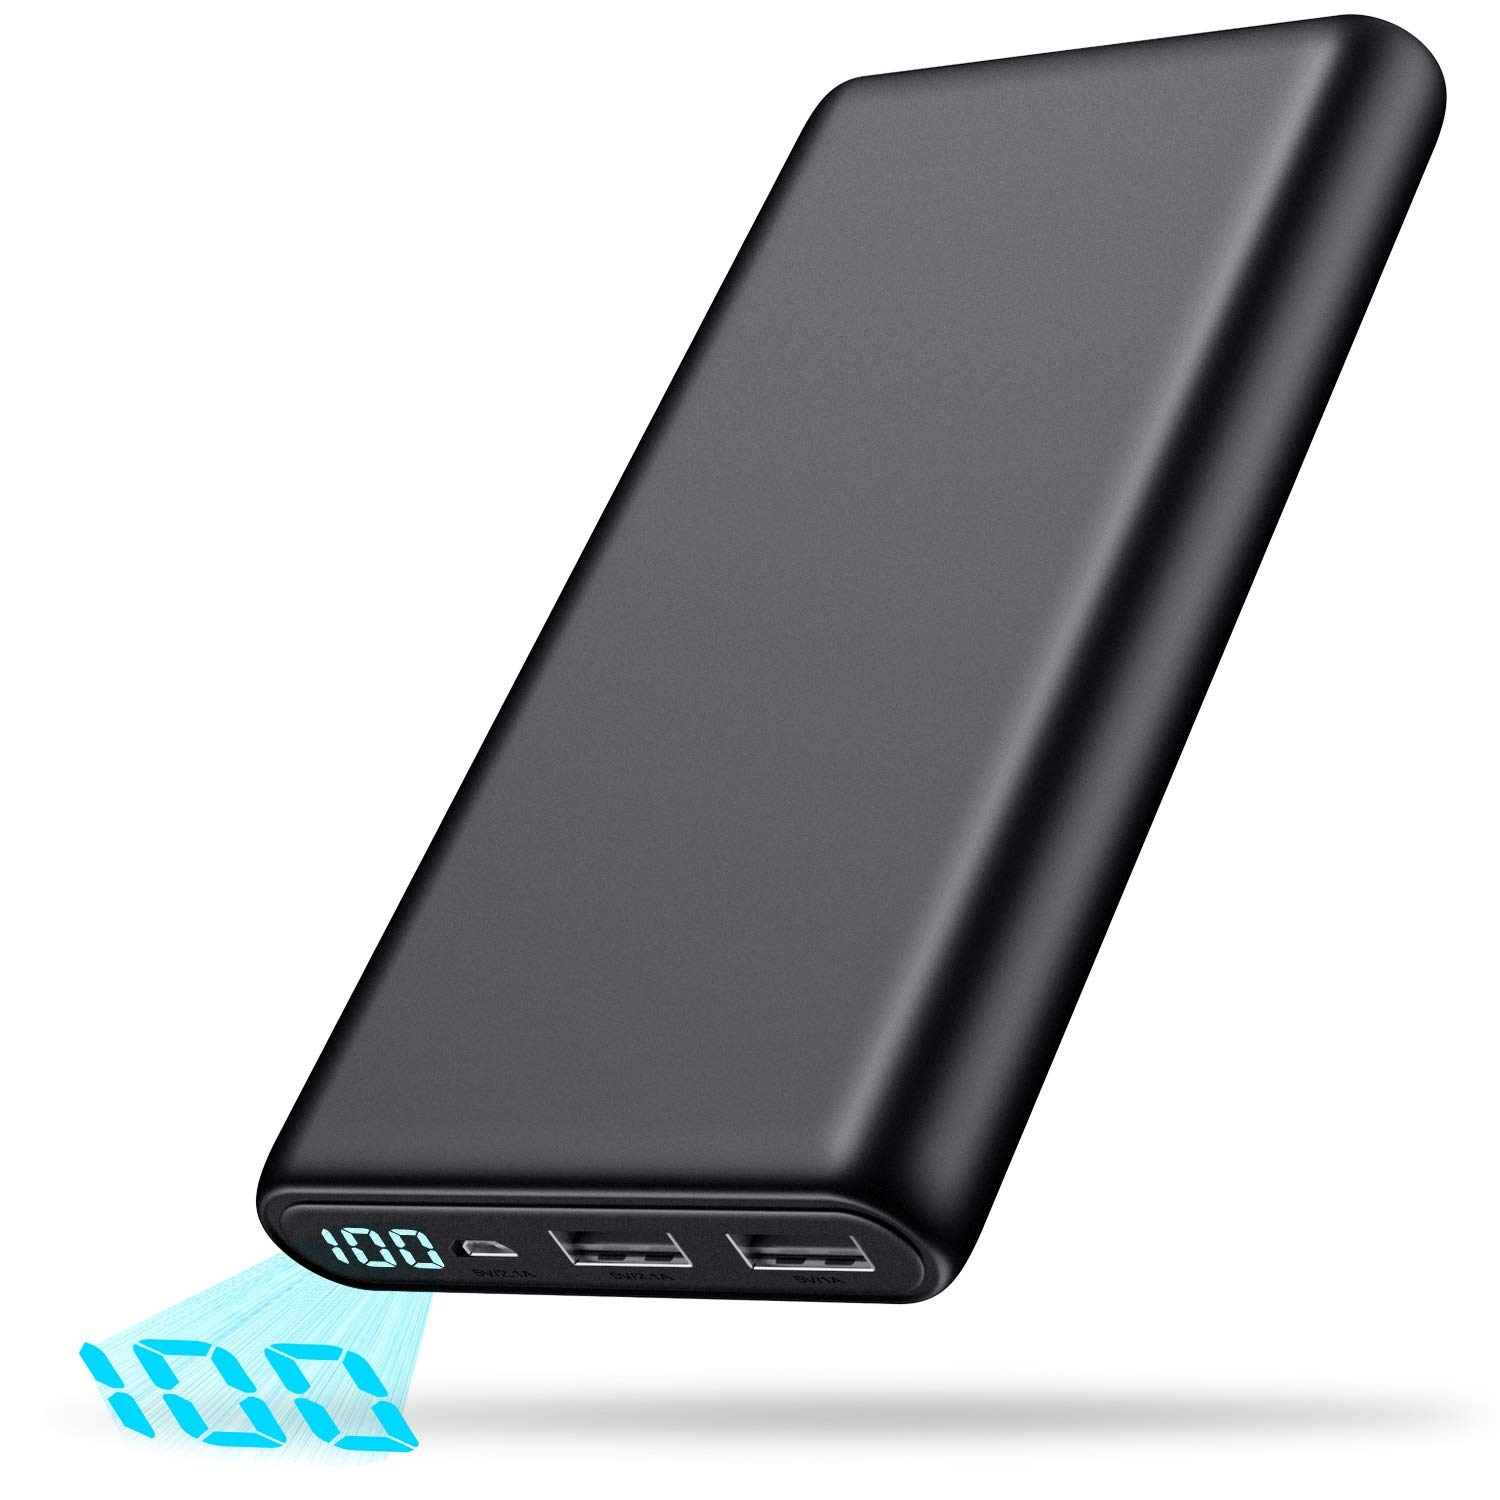 Portable Charger Power Bank 24800mAh High Capacity External Battery Pack Dual Output Port with LCD Digital Display Portable Phone Charger for Smart Phone, Android Phone, Tablets and Others by FOCHEW